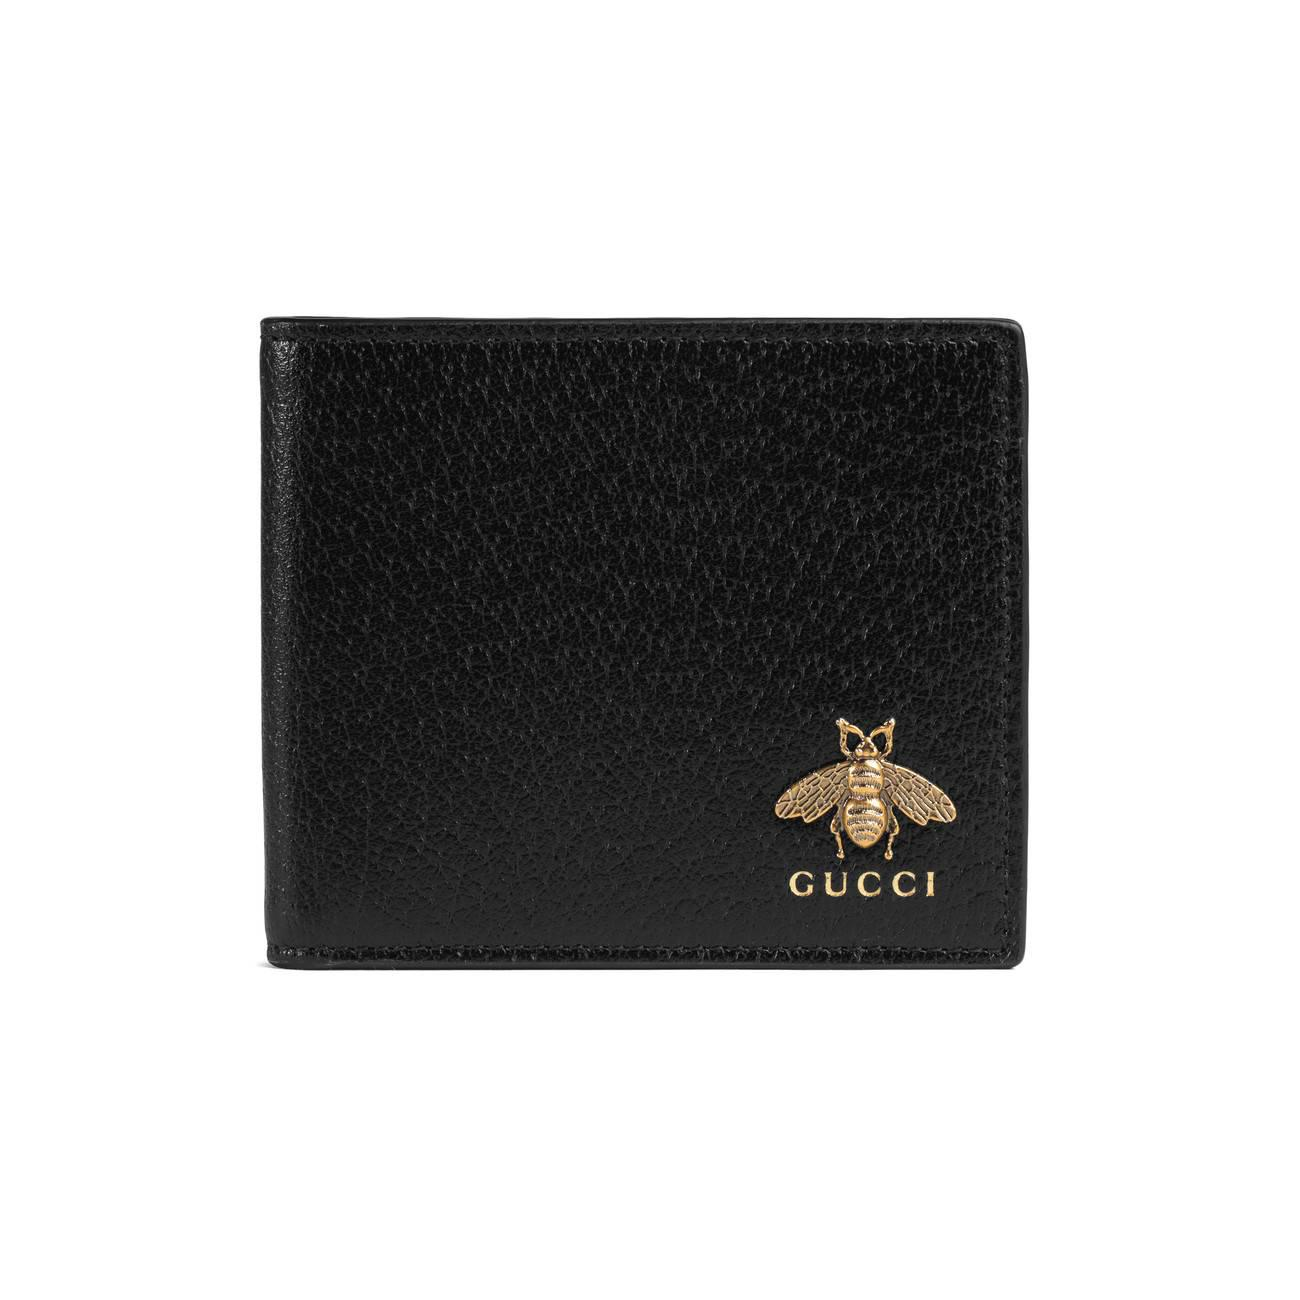 533245921849 Gucci - Black Animalier Leather Wallet for Men - Lyst. View fullscreen